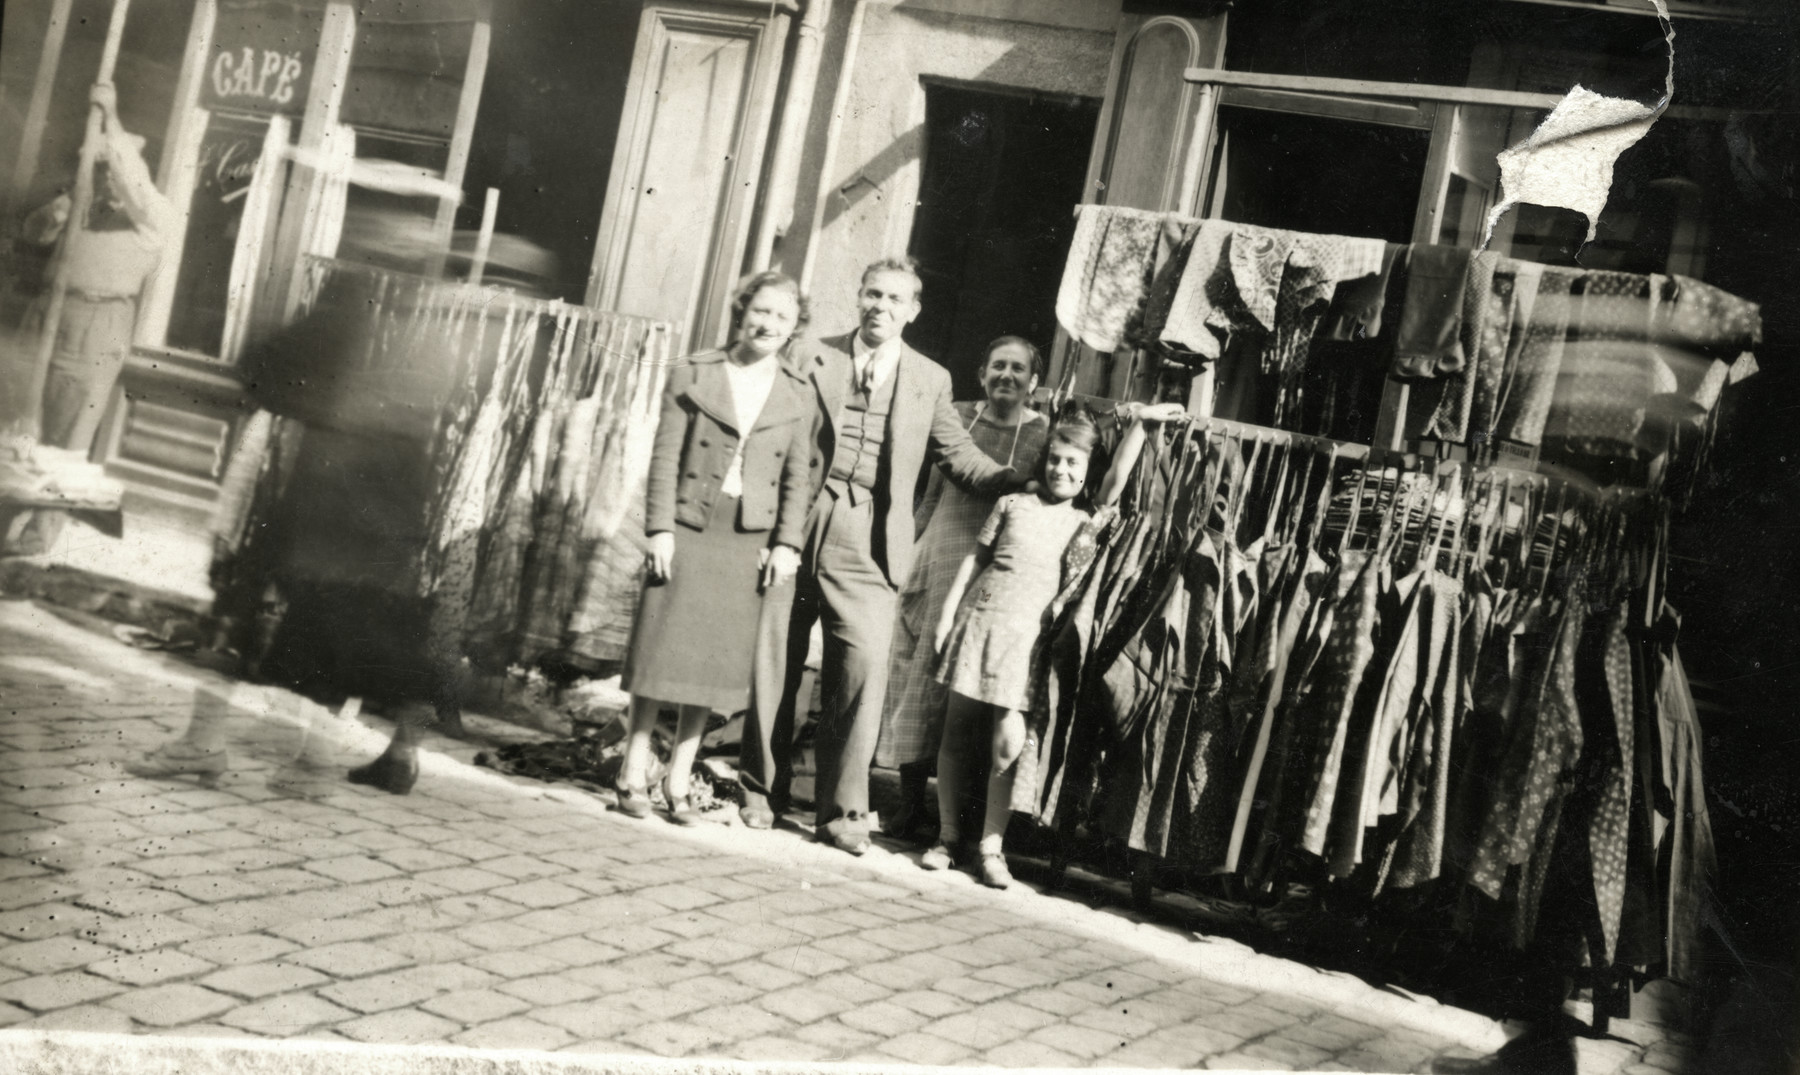 Esther poses with her father Shimon Romano in front of their clothing store in Lyon.